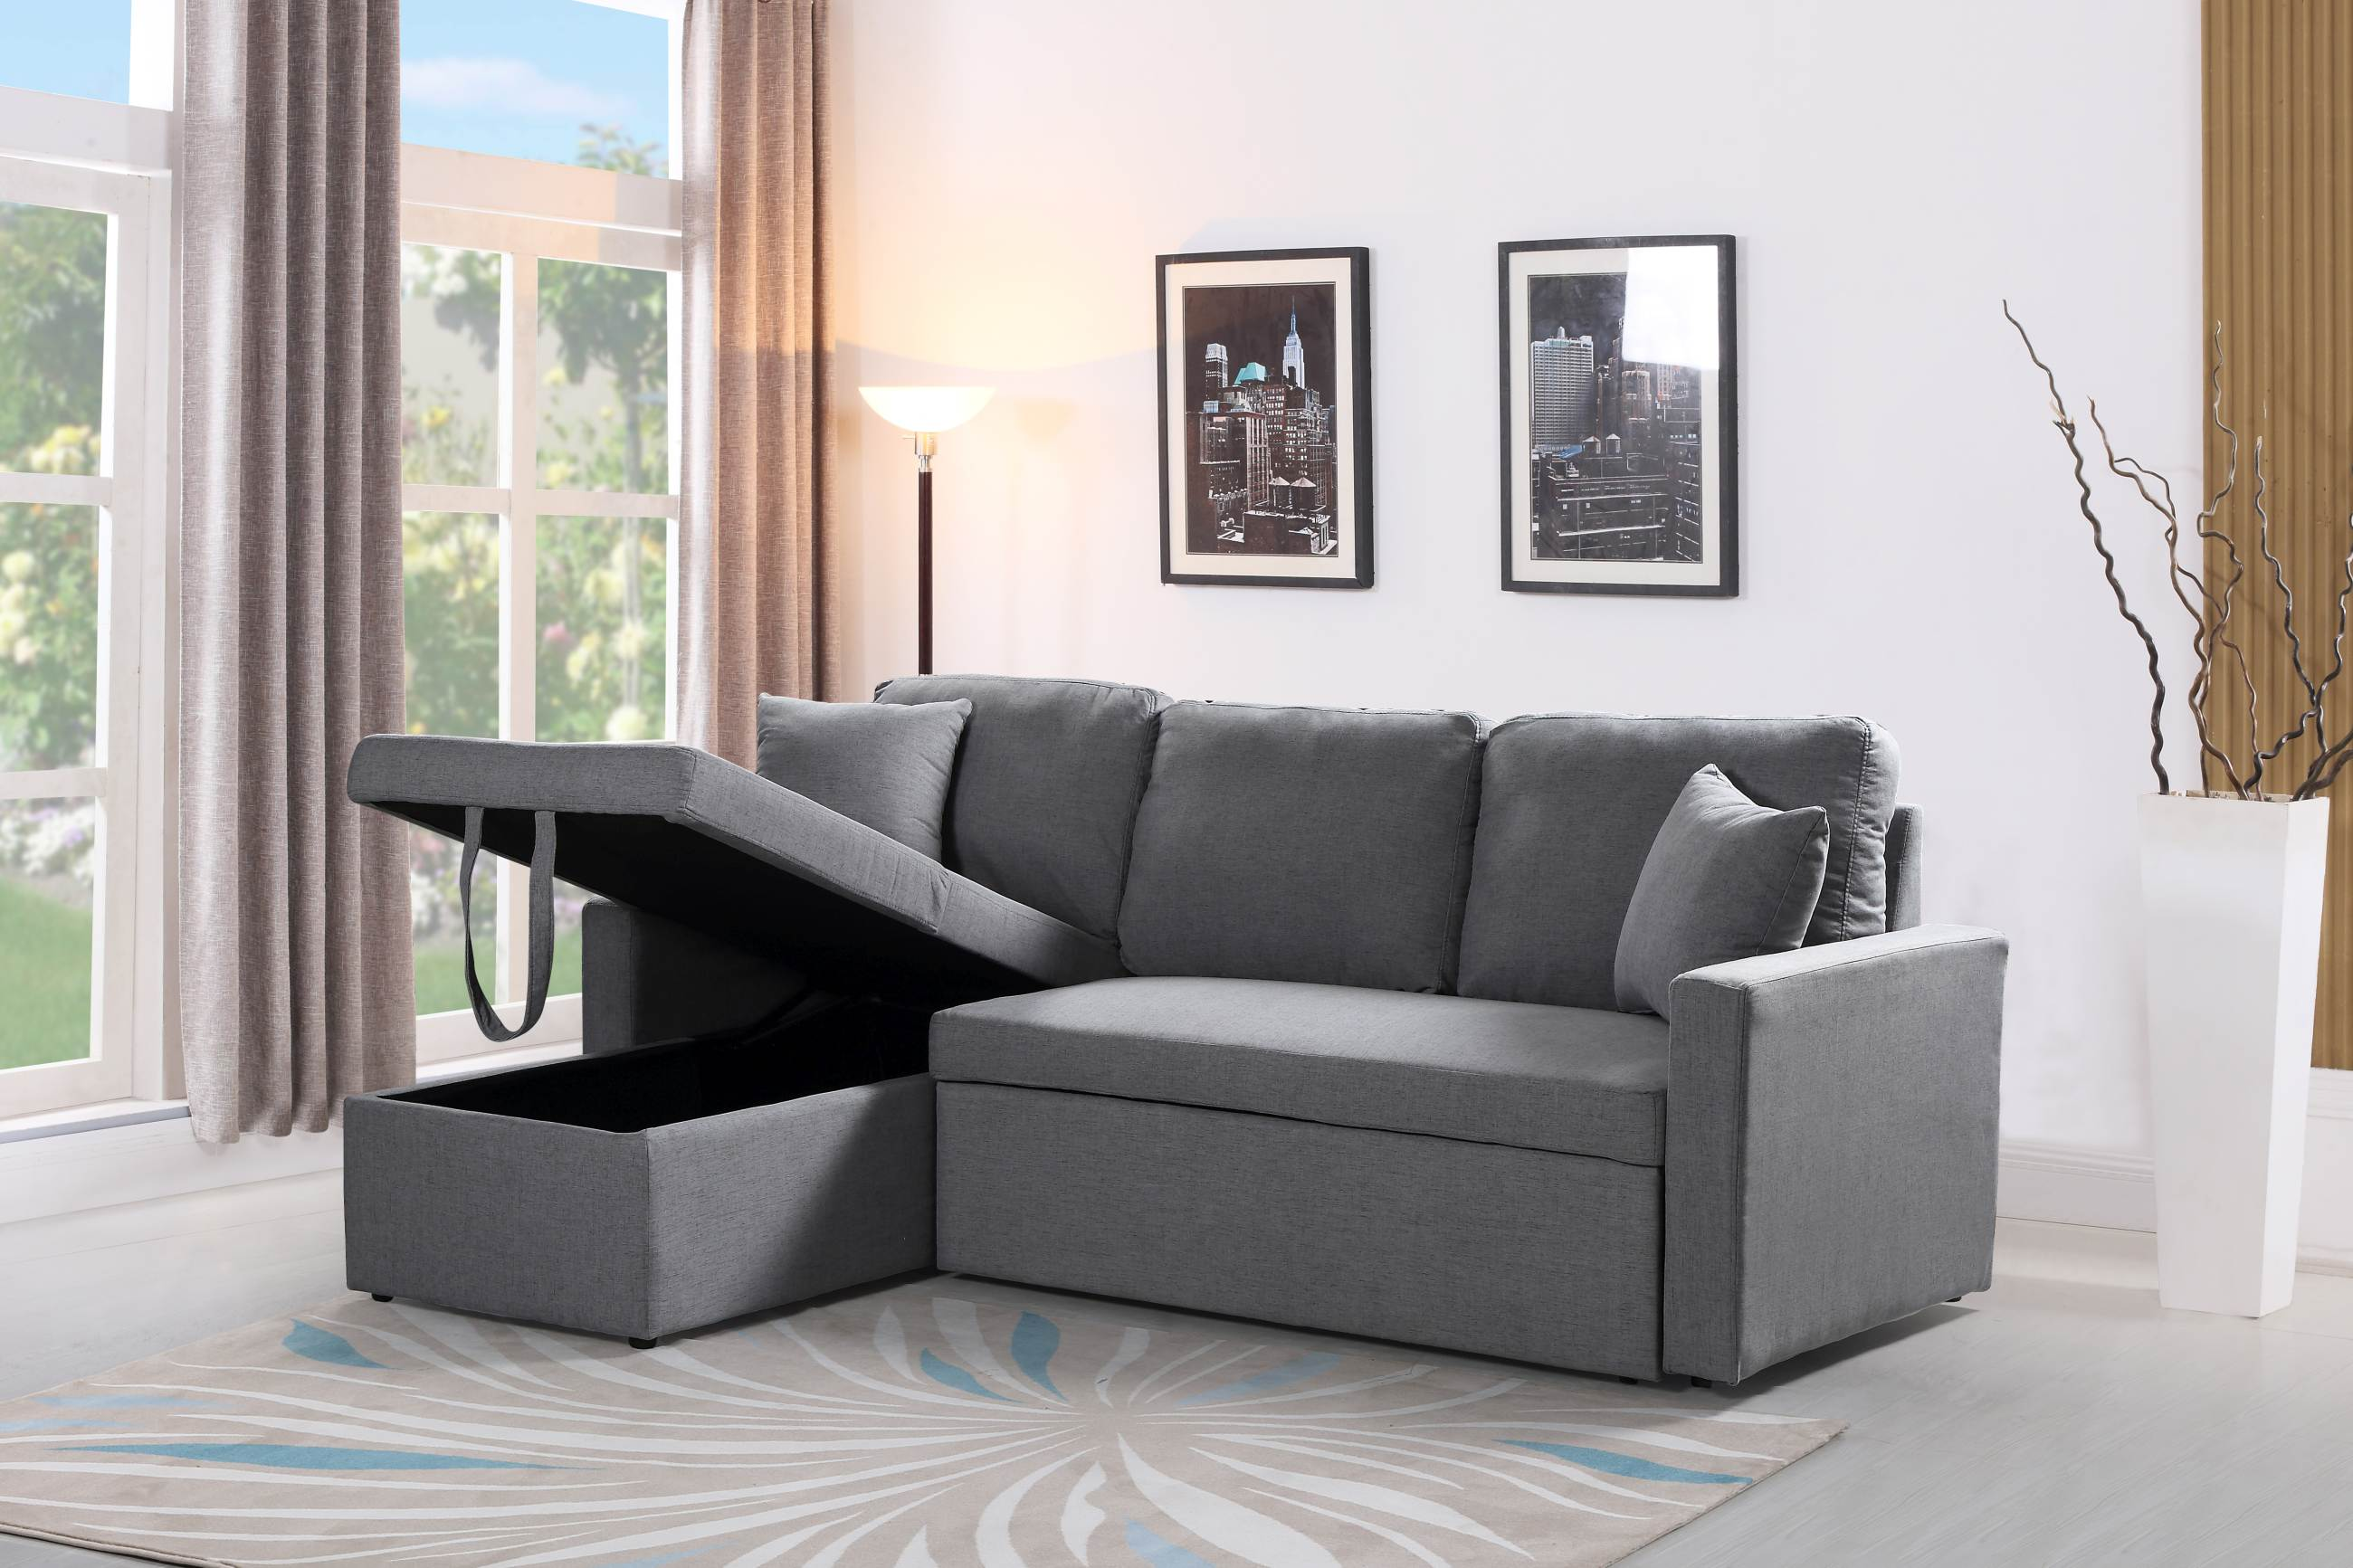 plush zara sofa review cheapest covers uk reversible sectional 3 in 1 bed